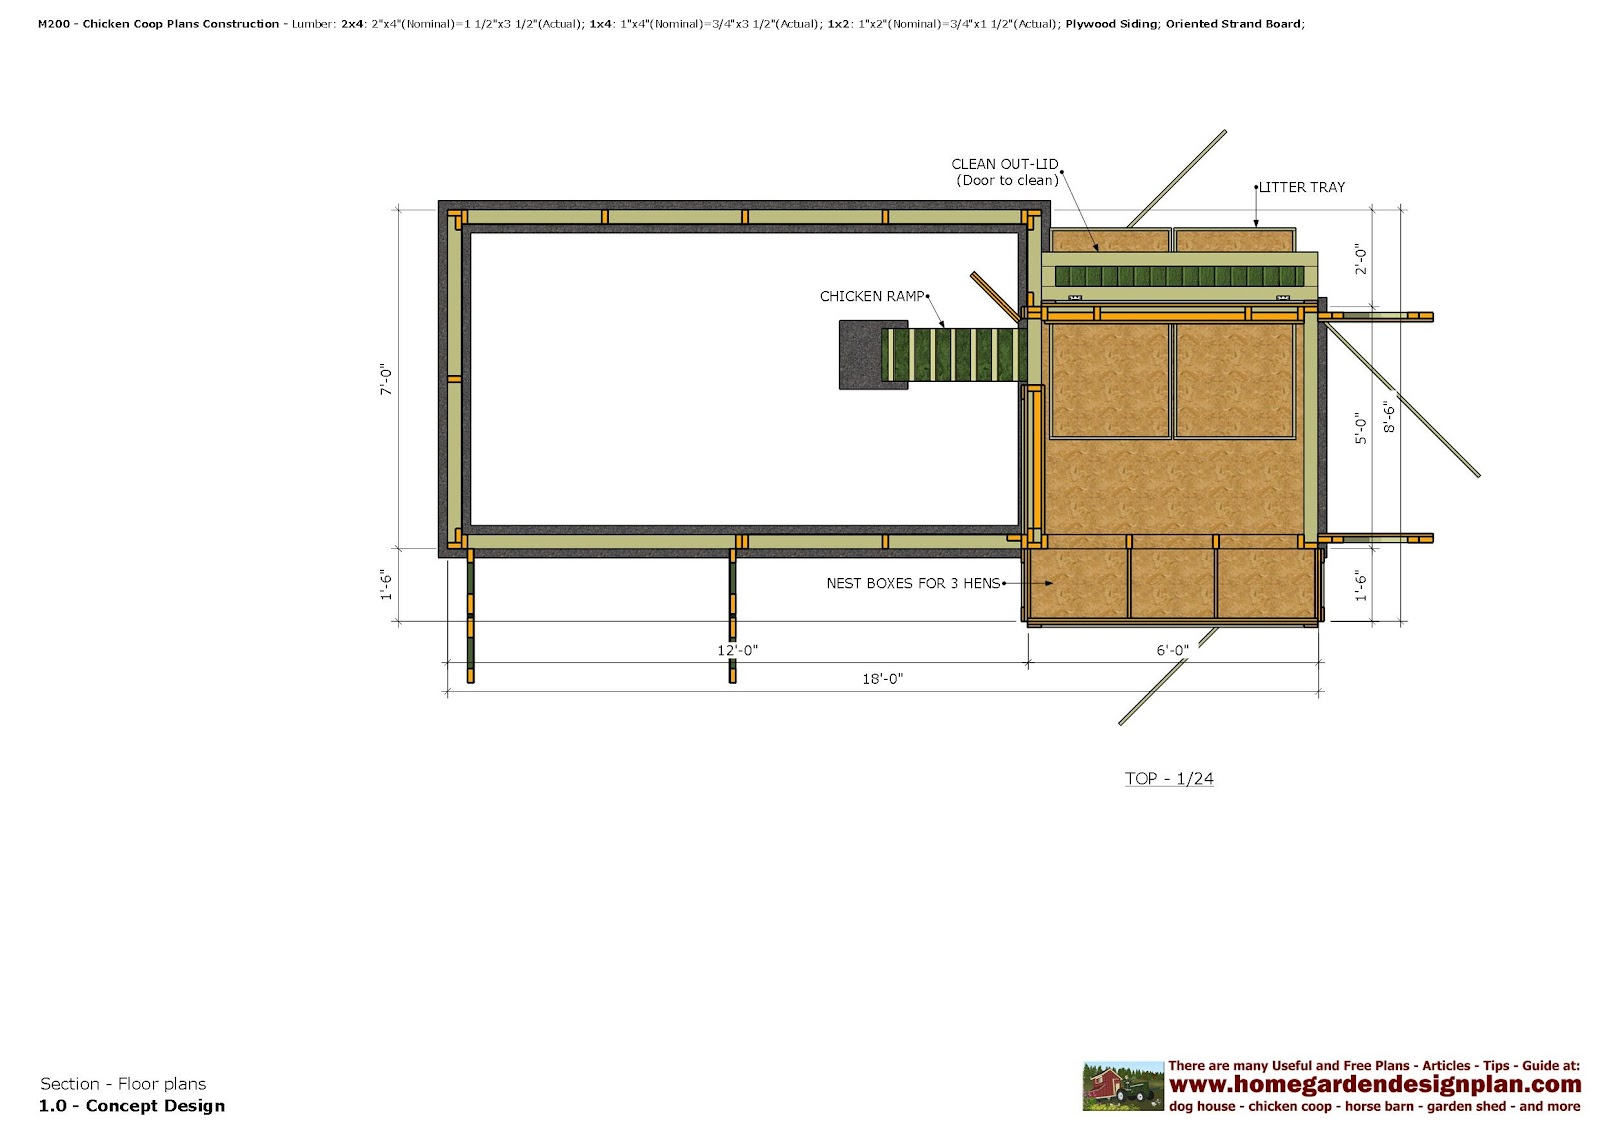 Home garden plans m200 chicken coop plans construction for Chicken coop dimensions